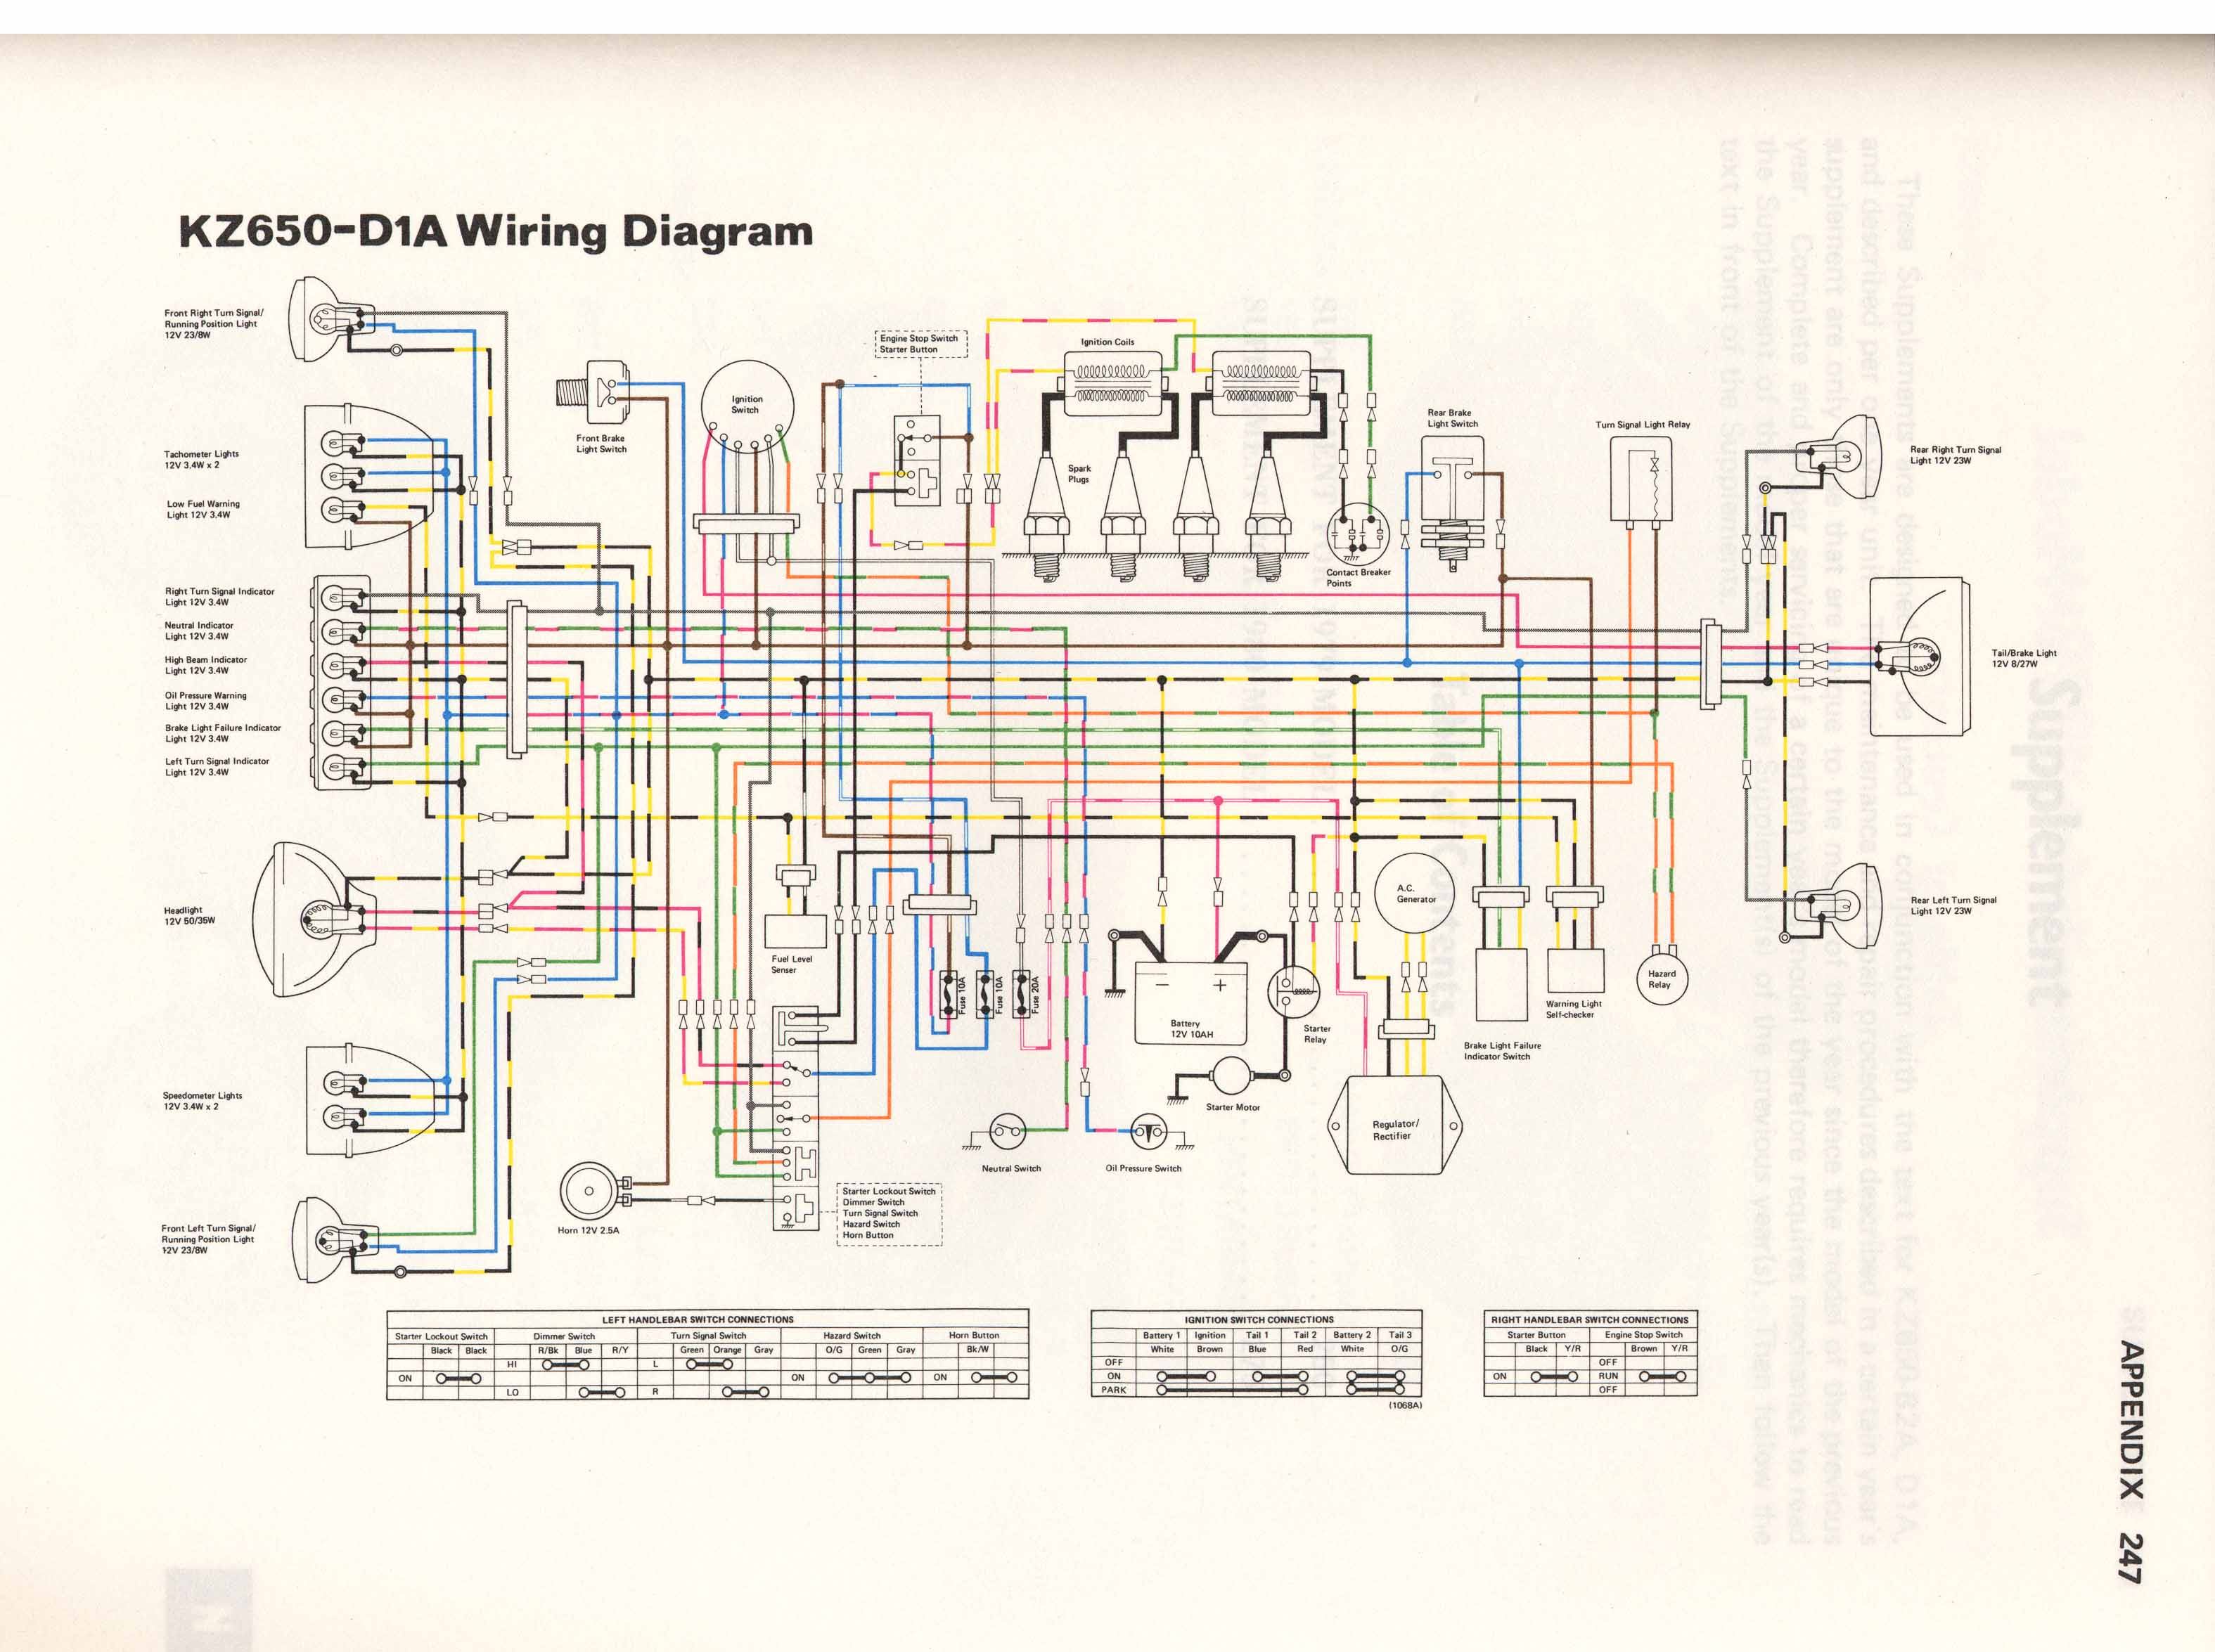 KZ650 D1A kz650 info wiring diagrams 1980 kawasaki kz440 wiring diagram at readyjetset.co